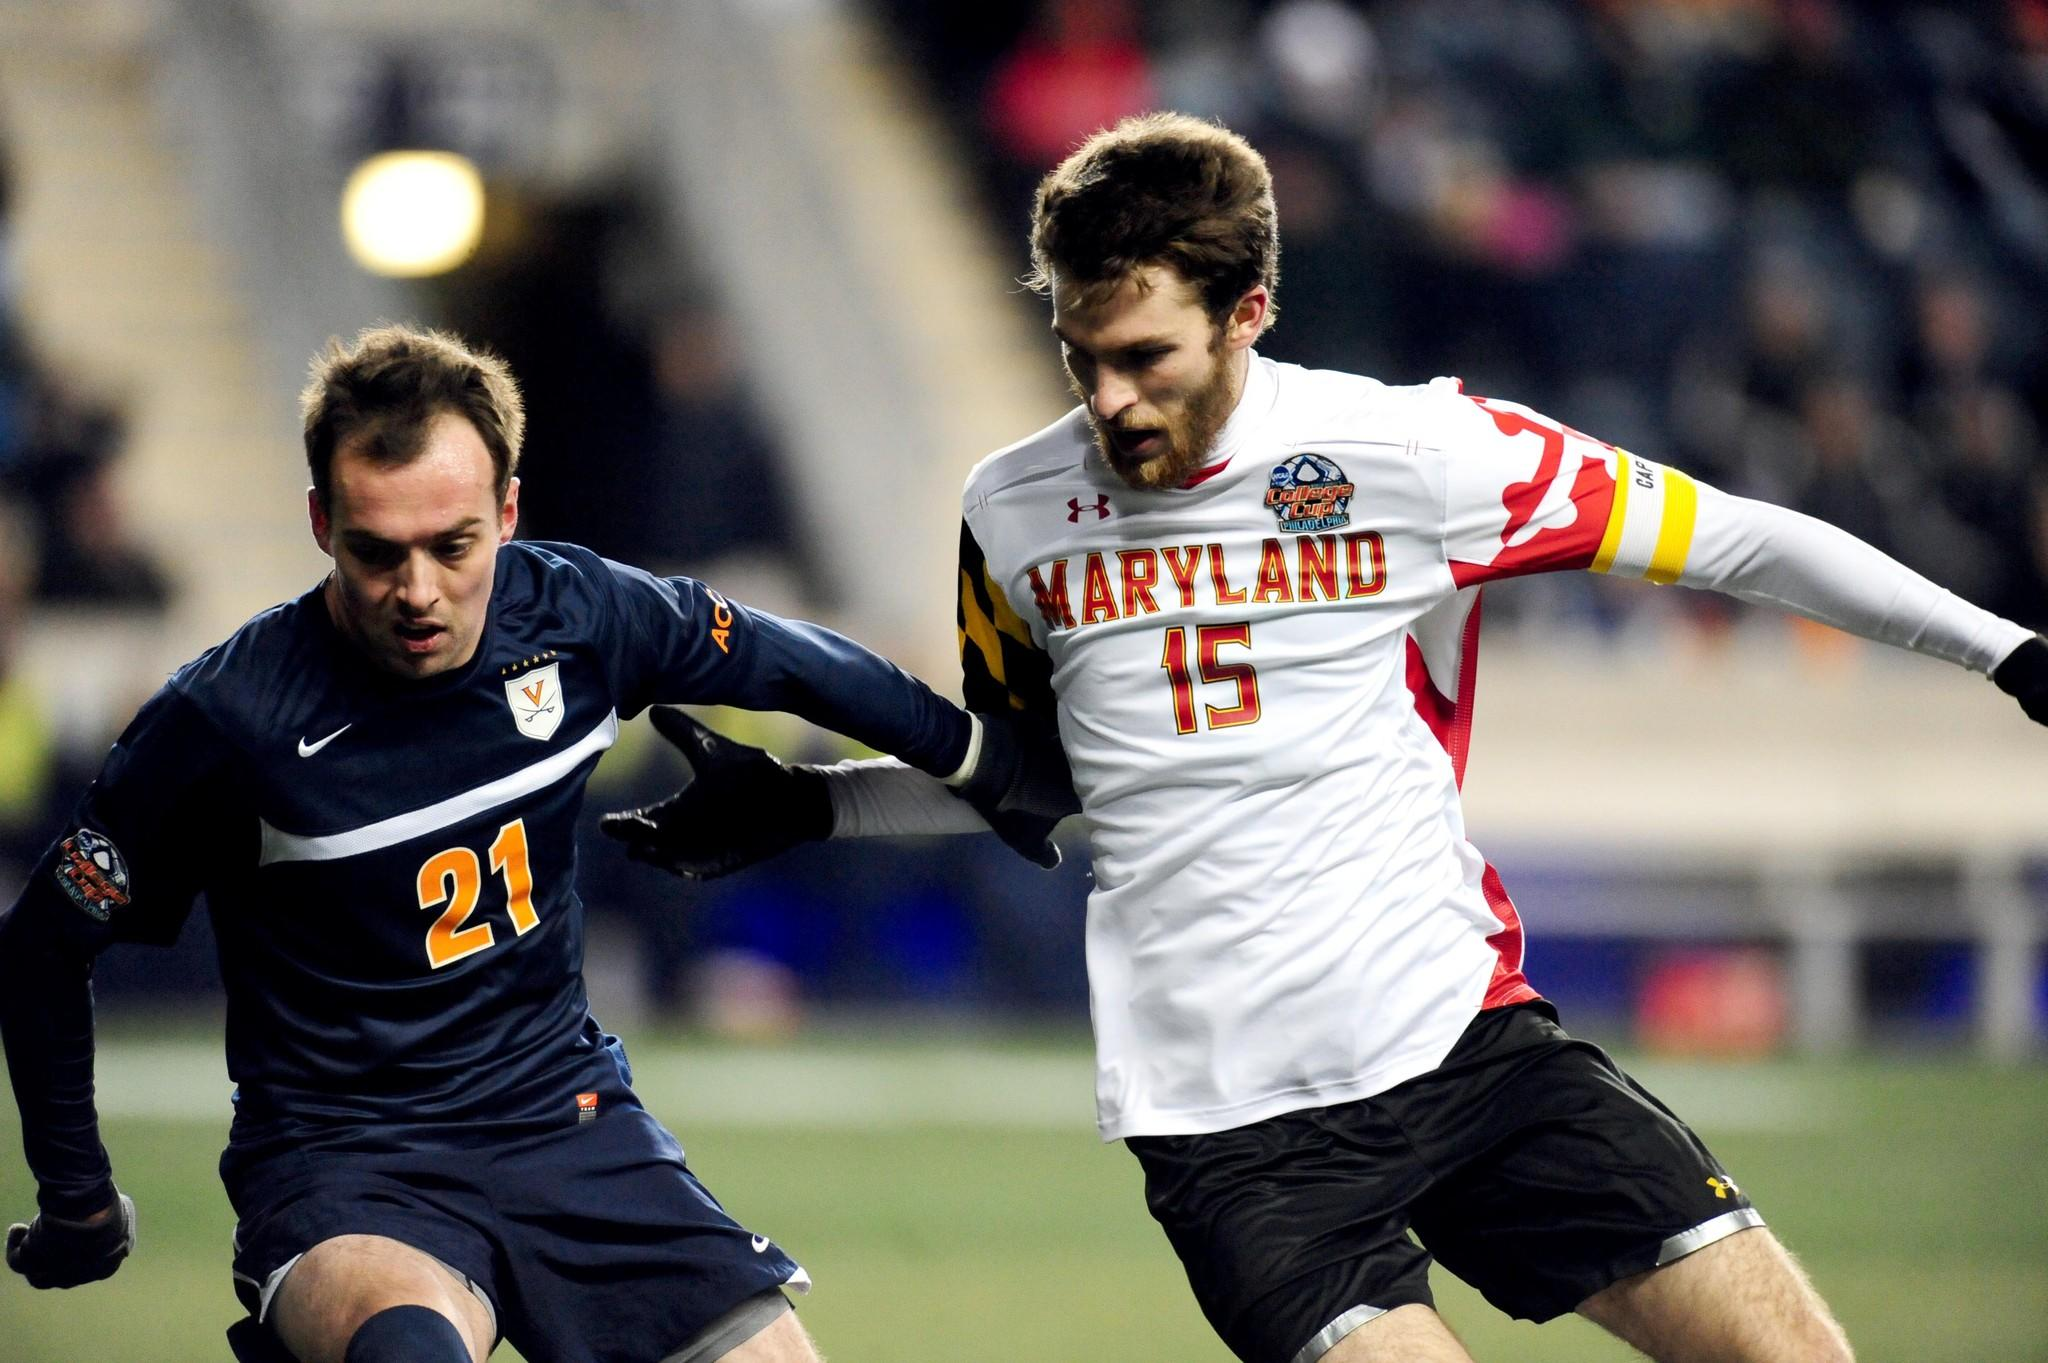 Dec 13, 2013; Chester, PA, USA; Maryland Terrapins forward Patrick Mullins (15) fights for a ball with Virginia Cavaliers forward Ryan Zinkham (21) at PPL Park. Mandatory Credit: Evan Habeeb-USA TODAY Sports